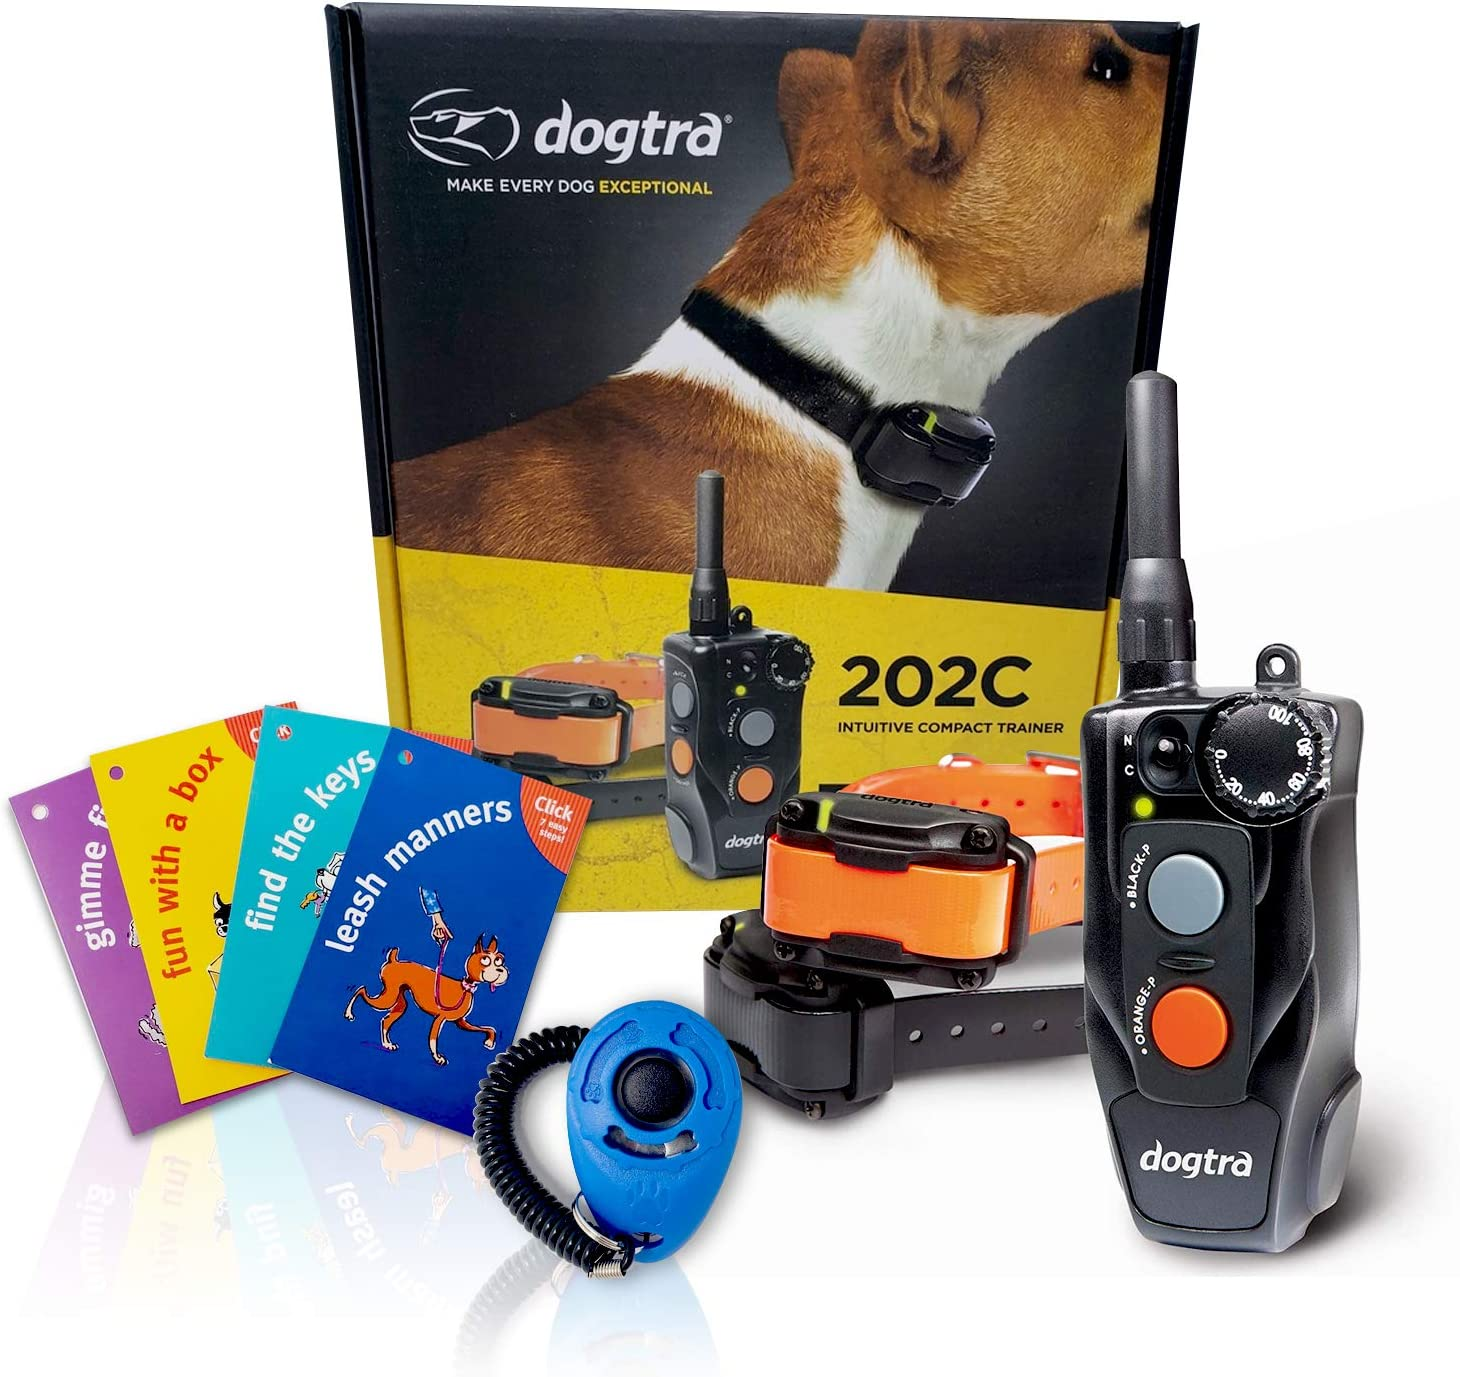 Dogtra 200C / 202C Remote Training Collar - 1/2 Mile Range, Rechargeable, Waterproof - Plus 1 iClick Training Card, Jestik Click Trainer - Value Bundle (2 Dogs System - 202C)